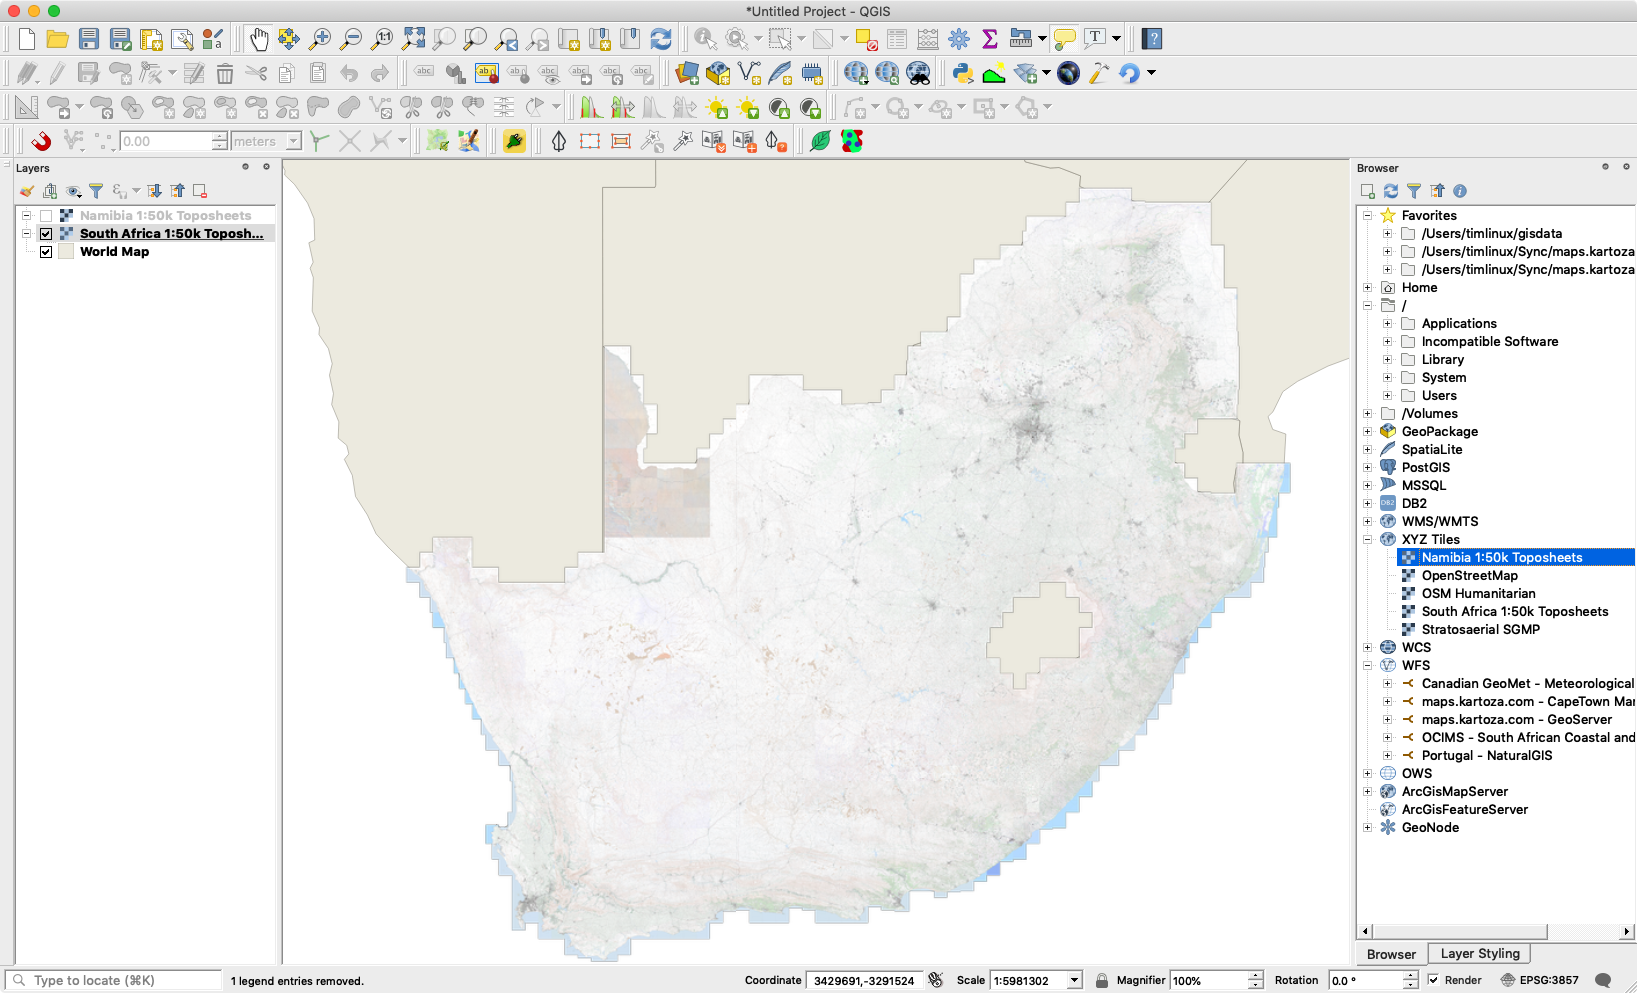 Drag the map layer into the QGIS Canvas